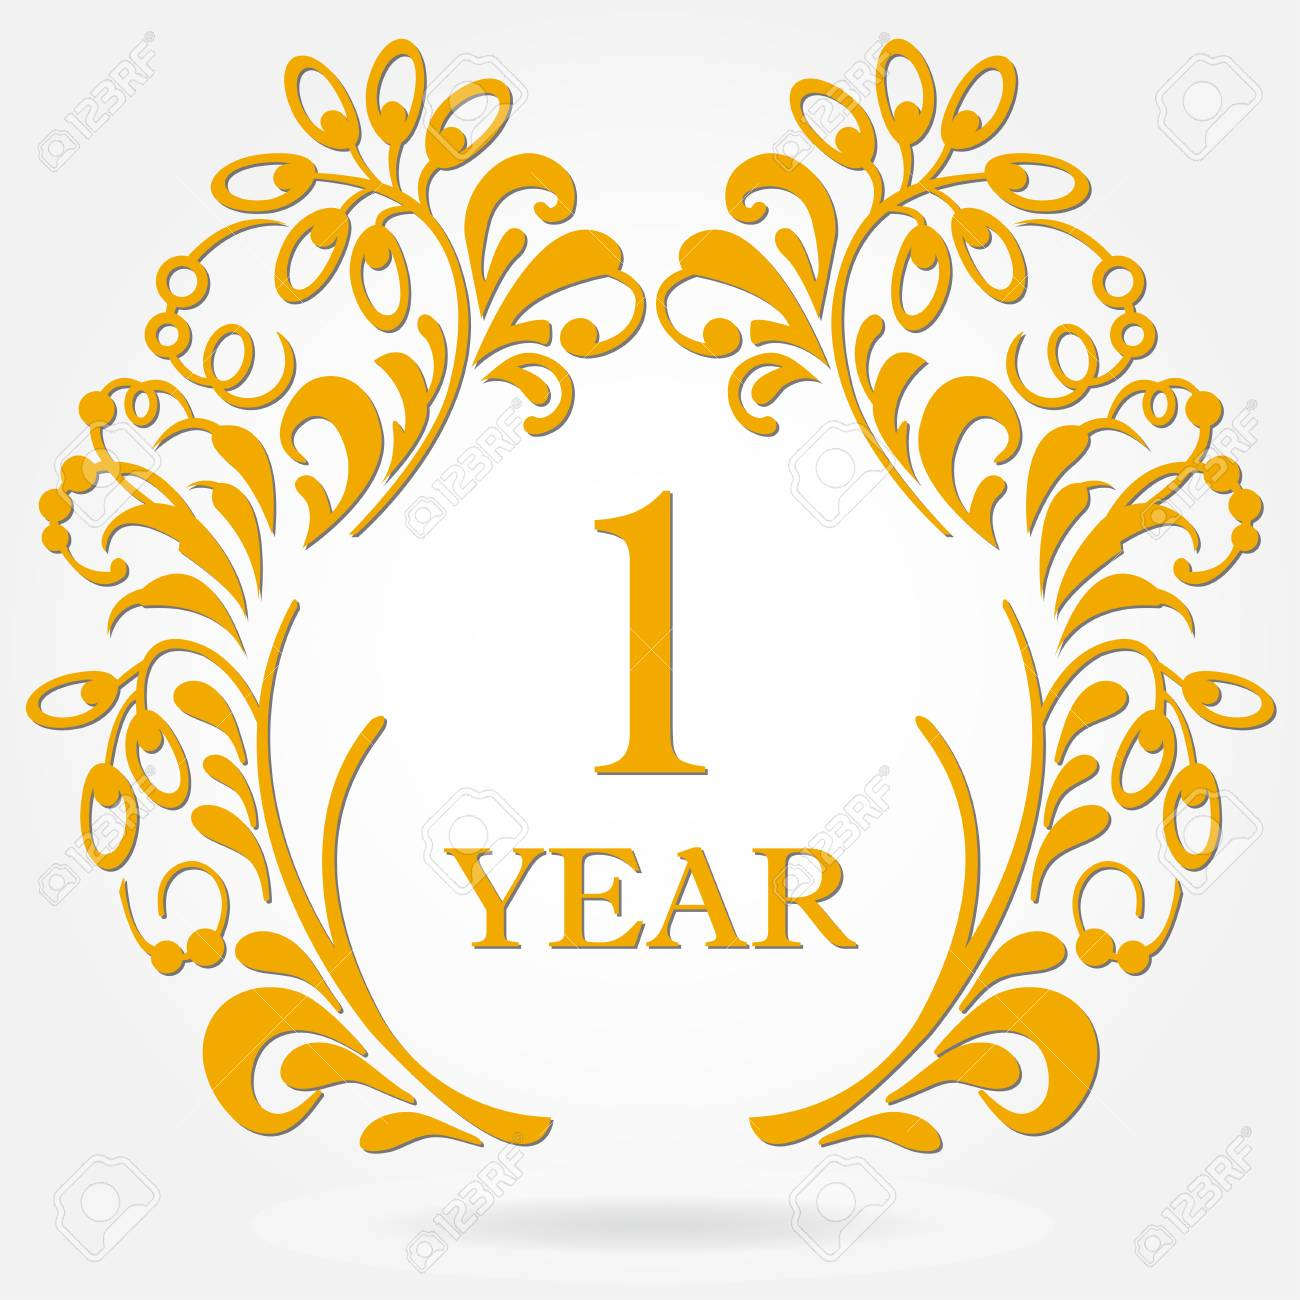 1 Year Anniversary Icon In Ornate Frame With Floral Elements